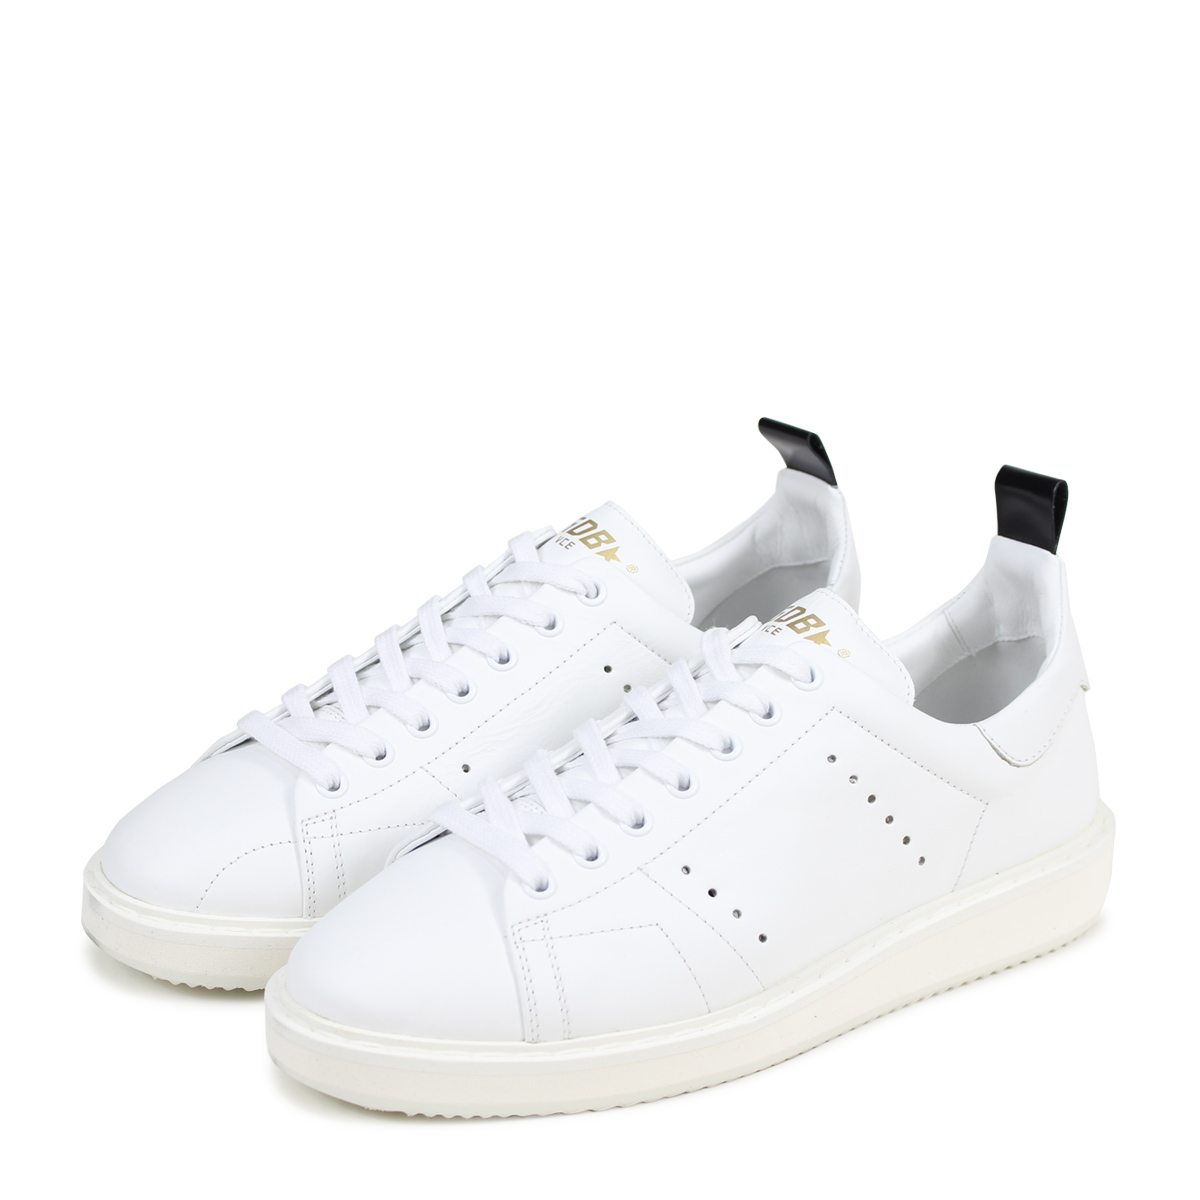 af22f23d2e Golden Goose STARTER golden goose sneakers men starter white GCOMS631 A1  [194]